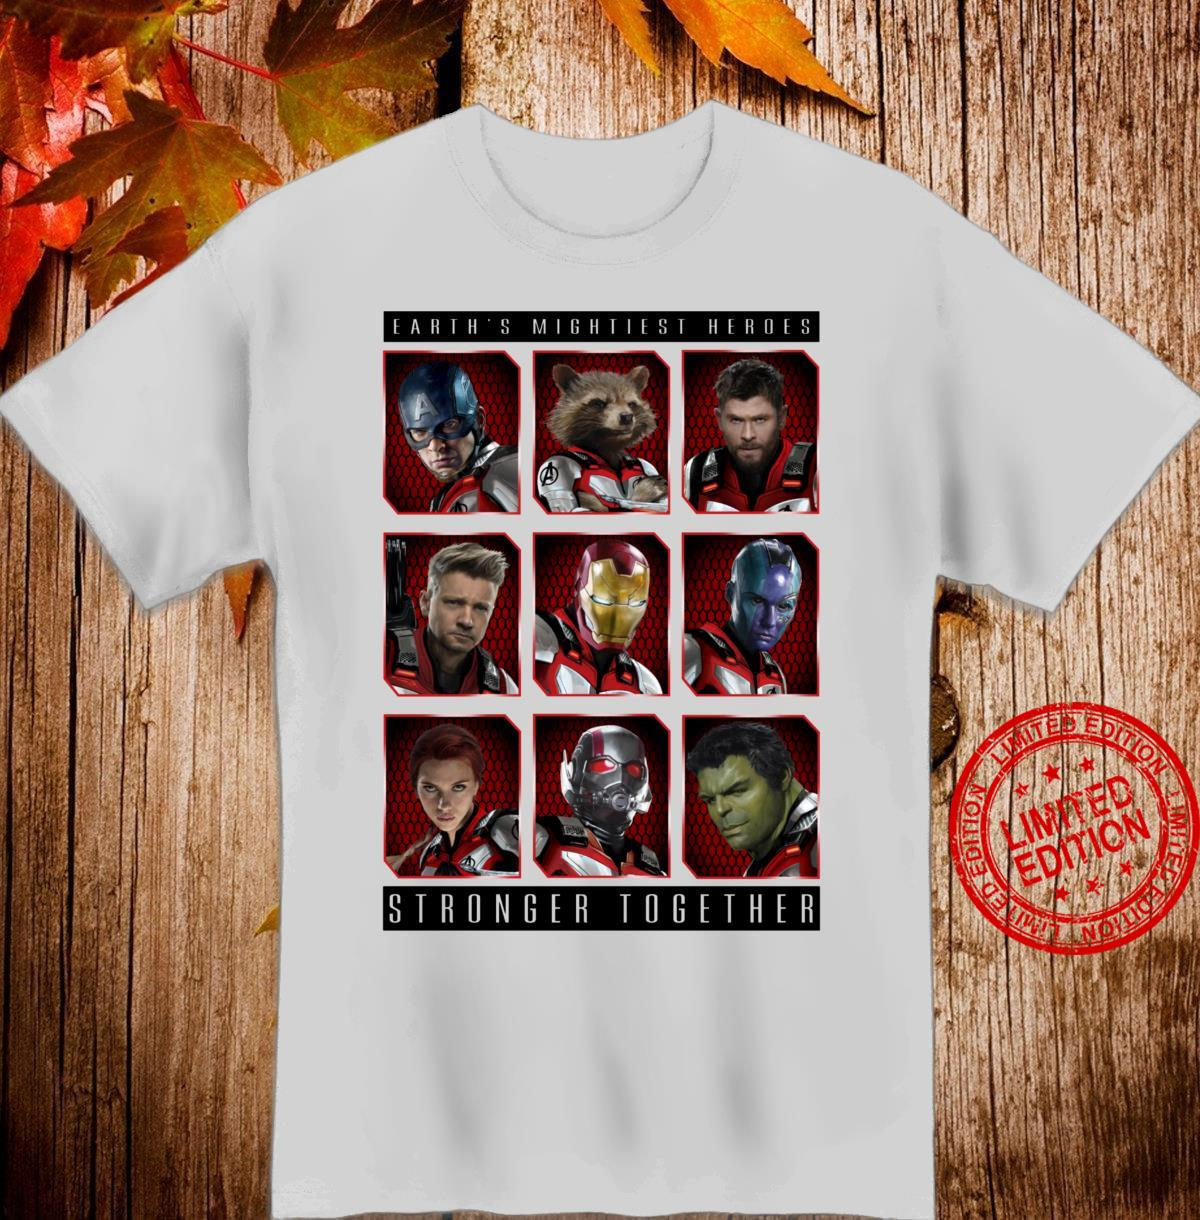 Marvel Avengers Earth's Mightiest Heroes Stronger Together Shirt